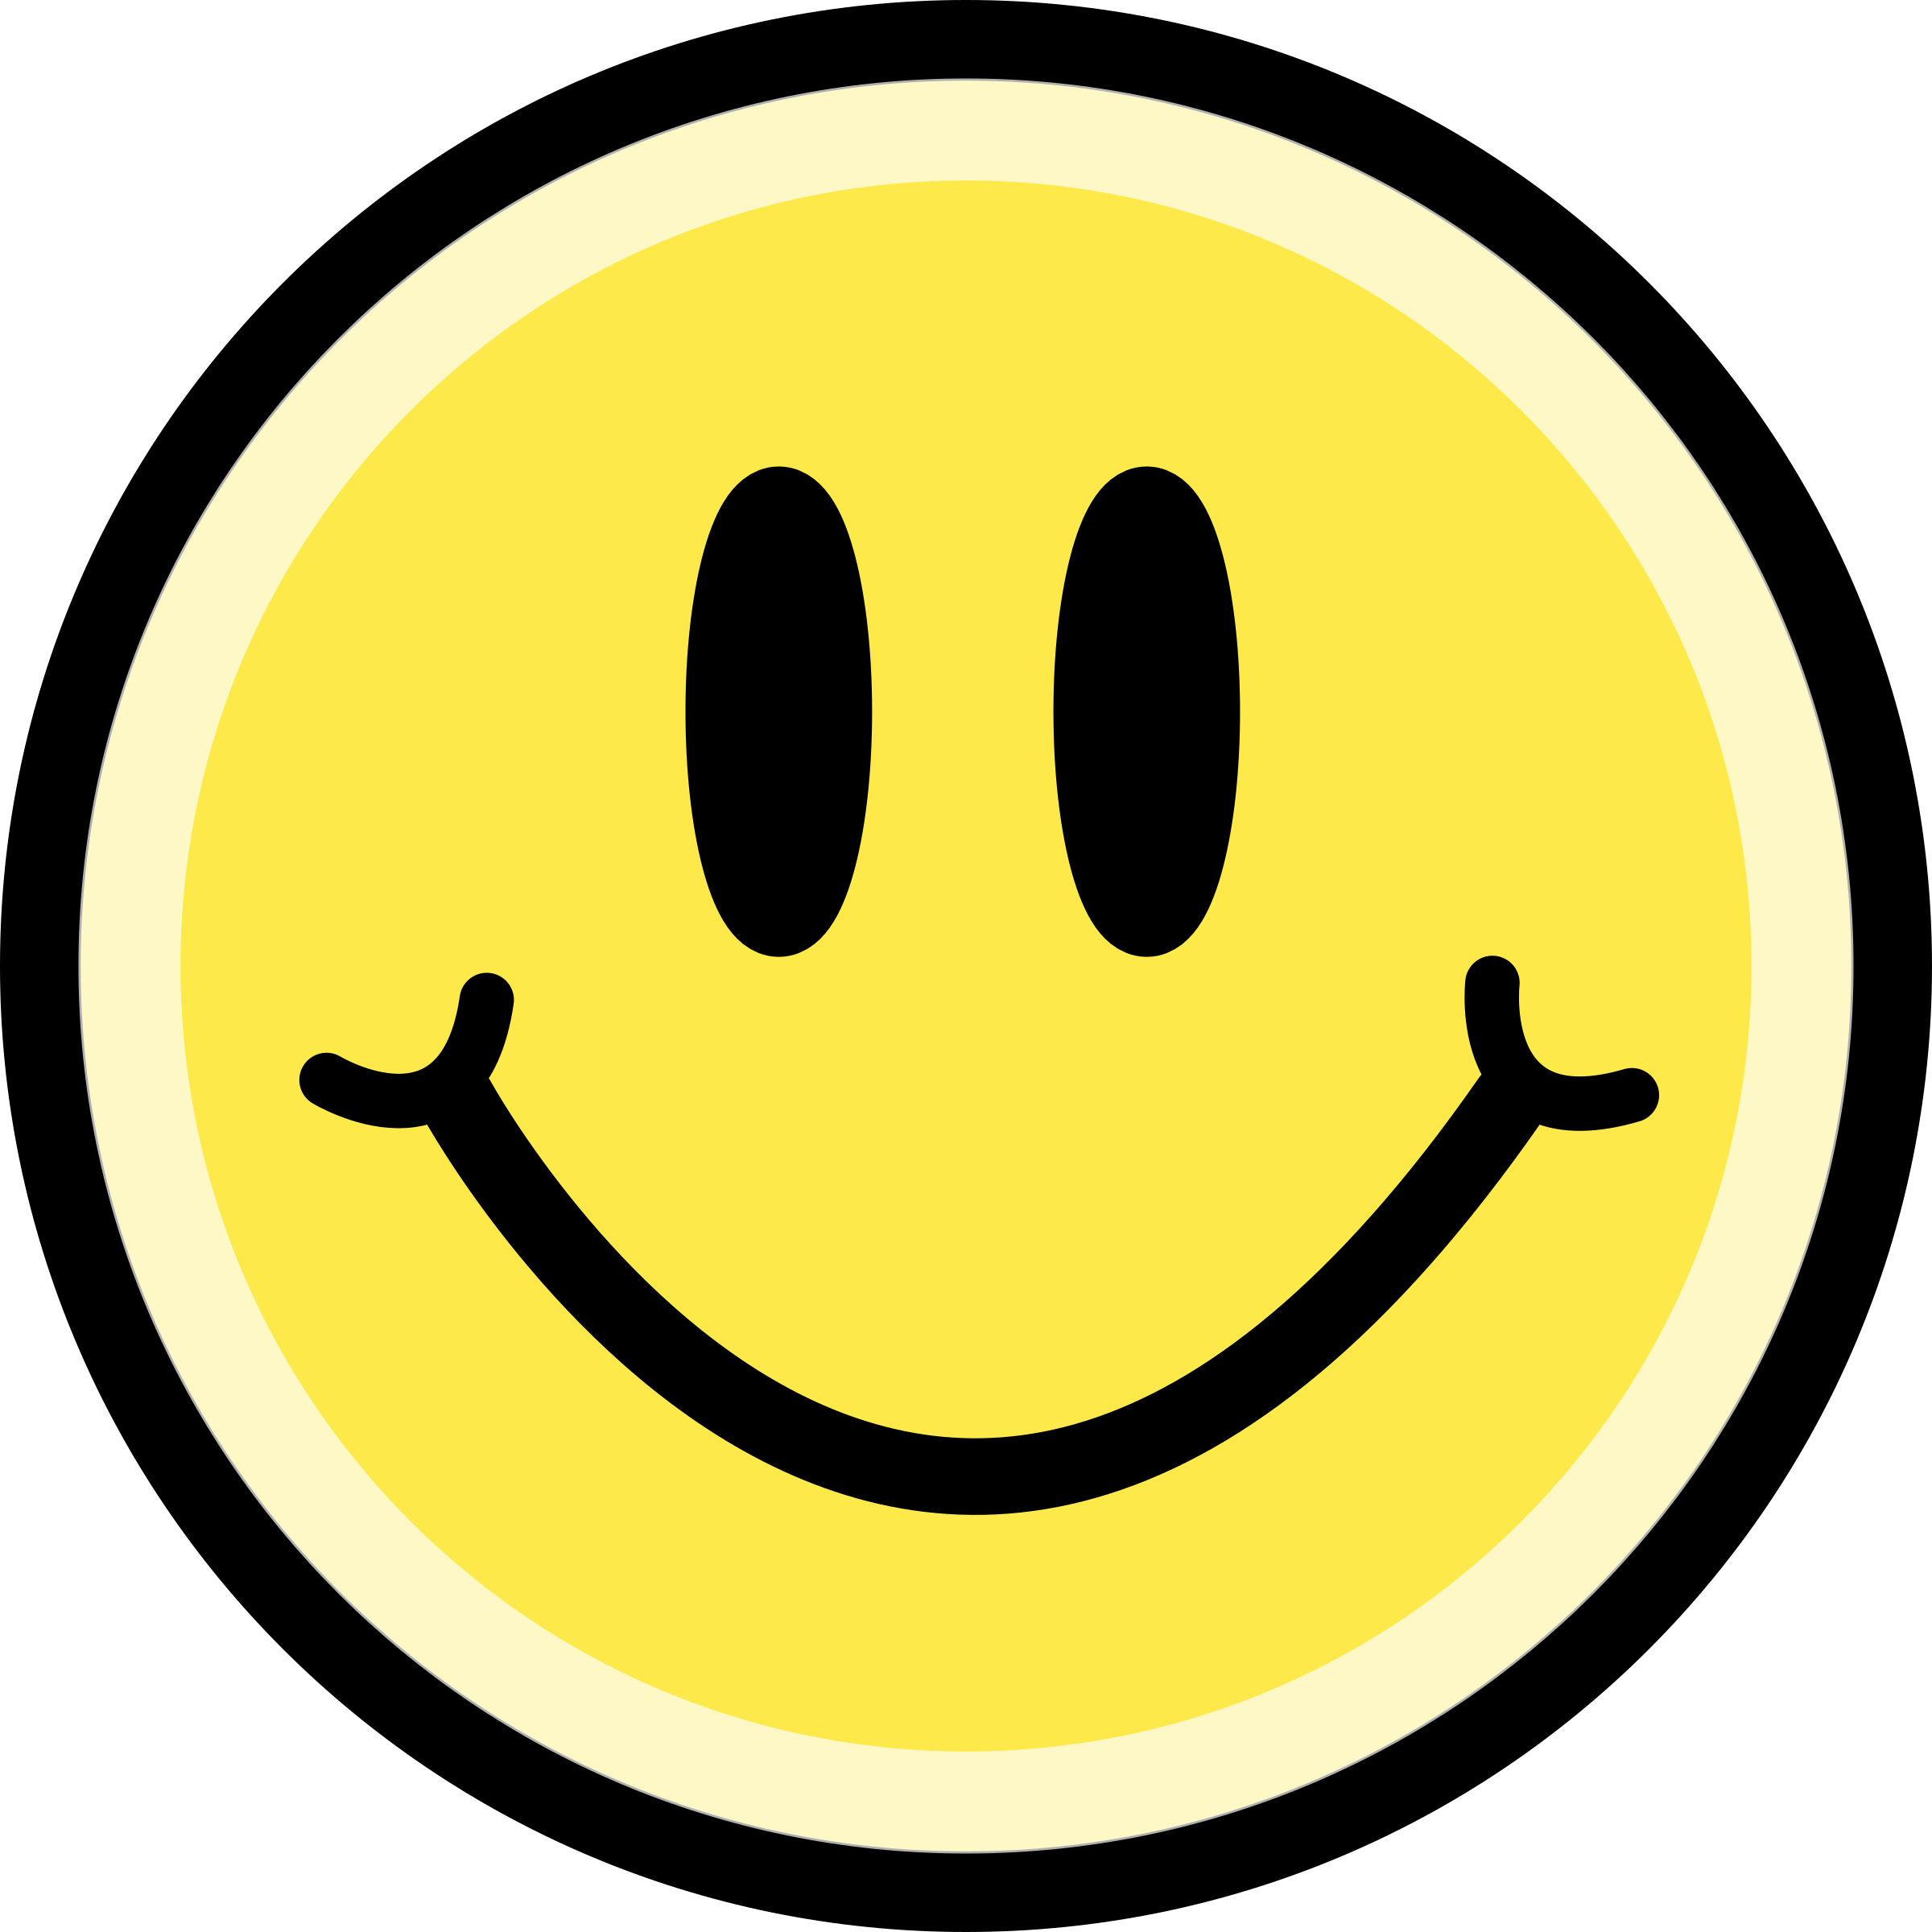 Smiley face button png. Clipart emoticon yellow big